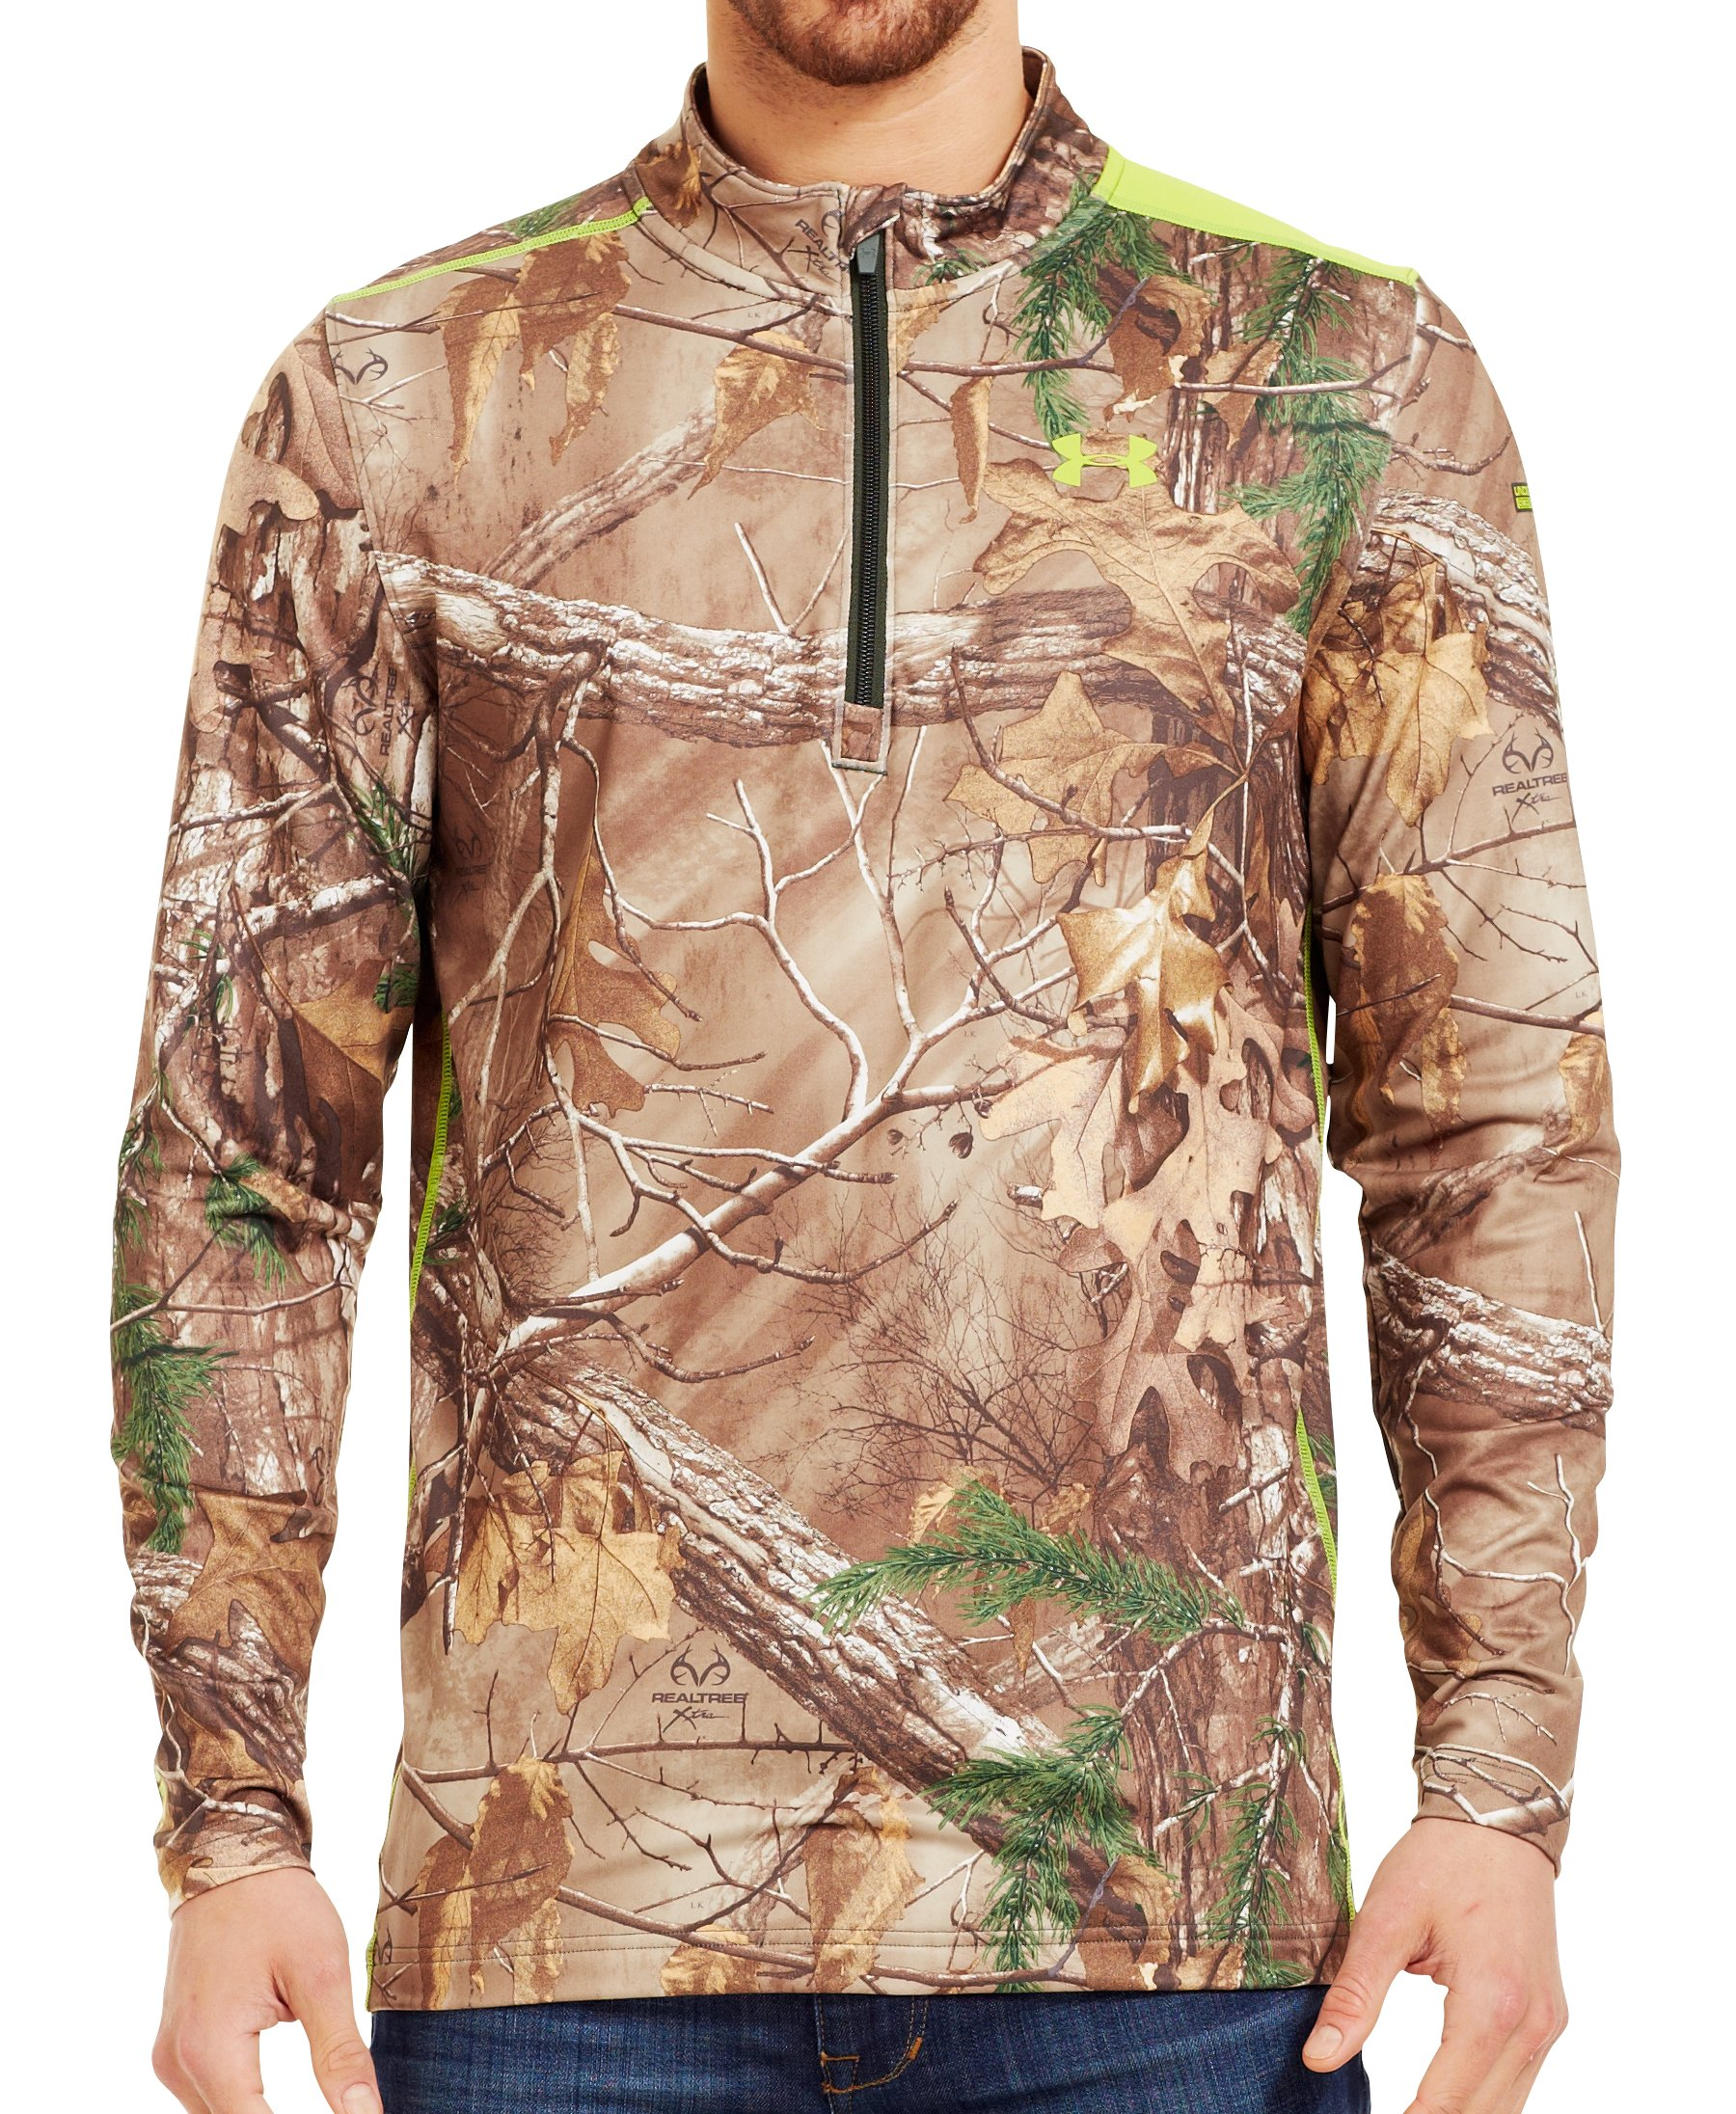 Men's ColdGear® Evo Scent Control Fitted ¼ Zip, REALTREE AP-XTRA, Front